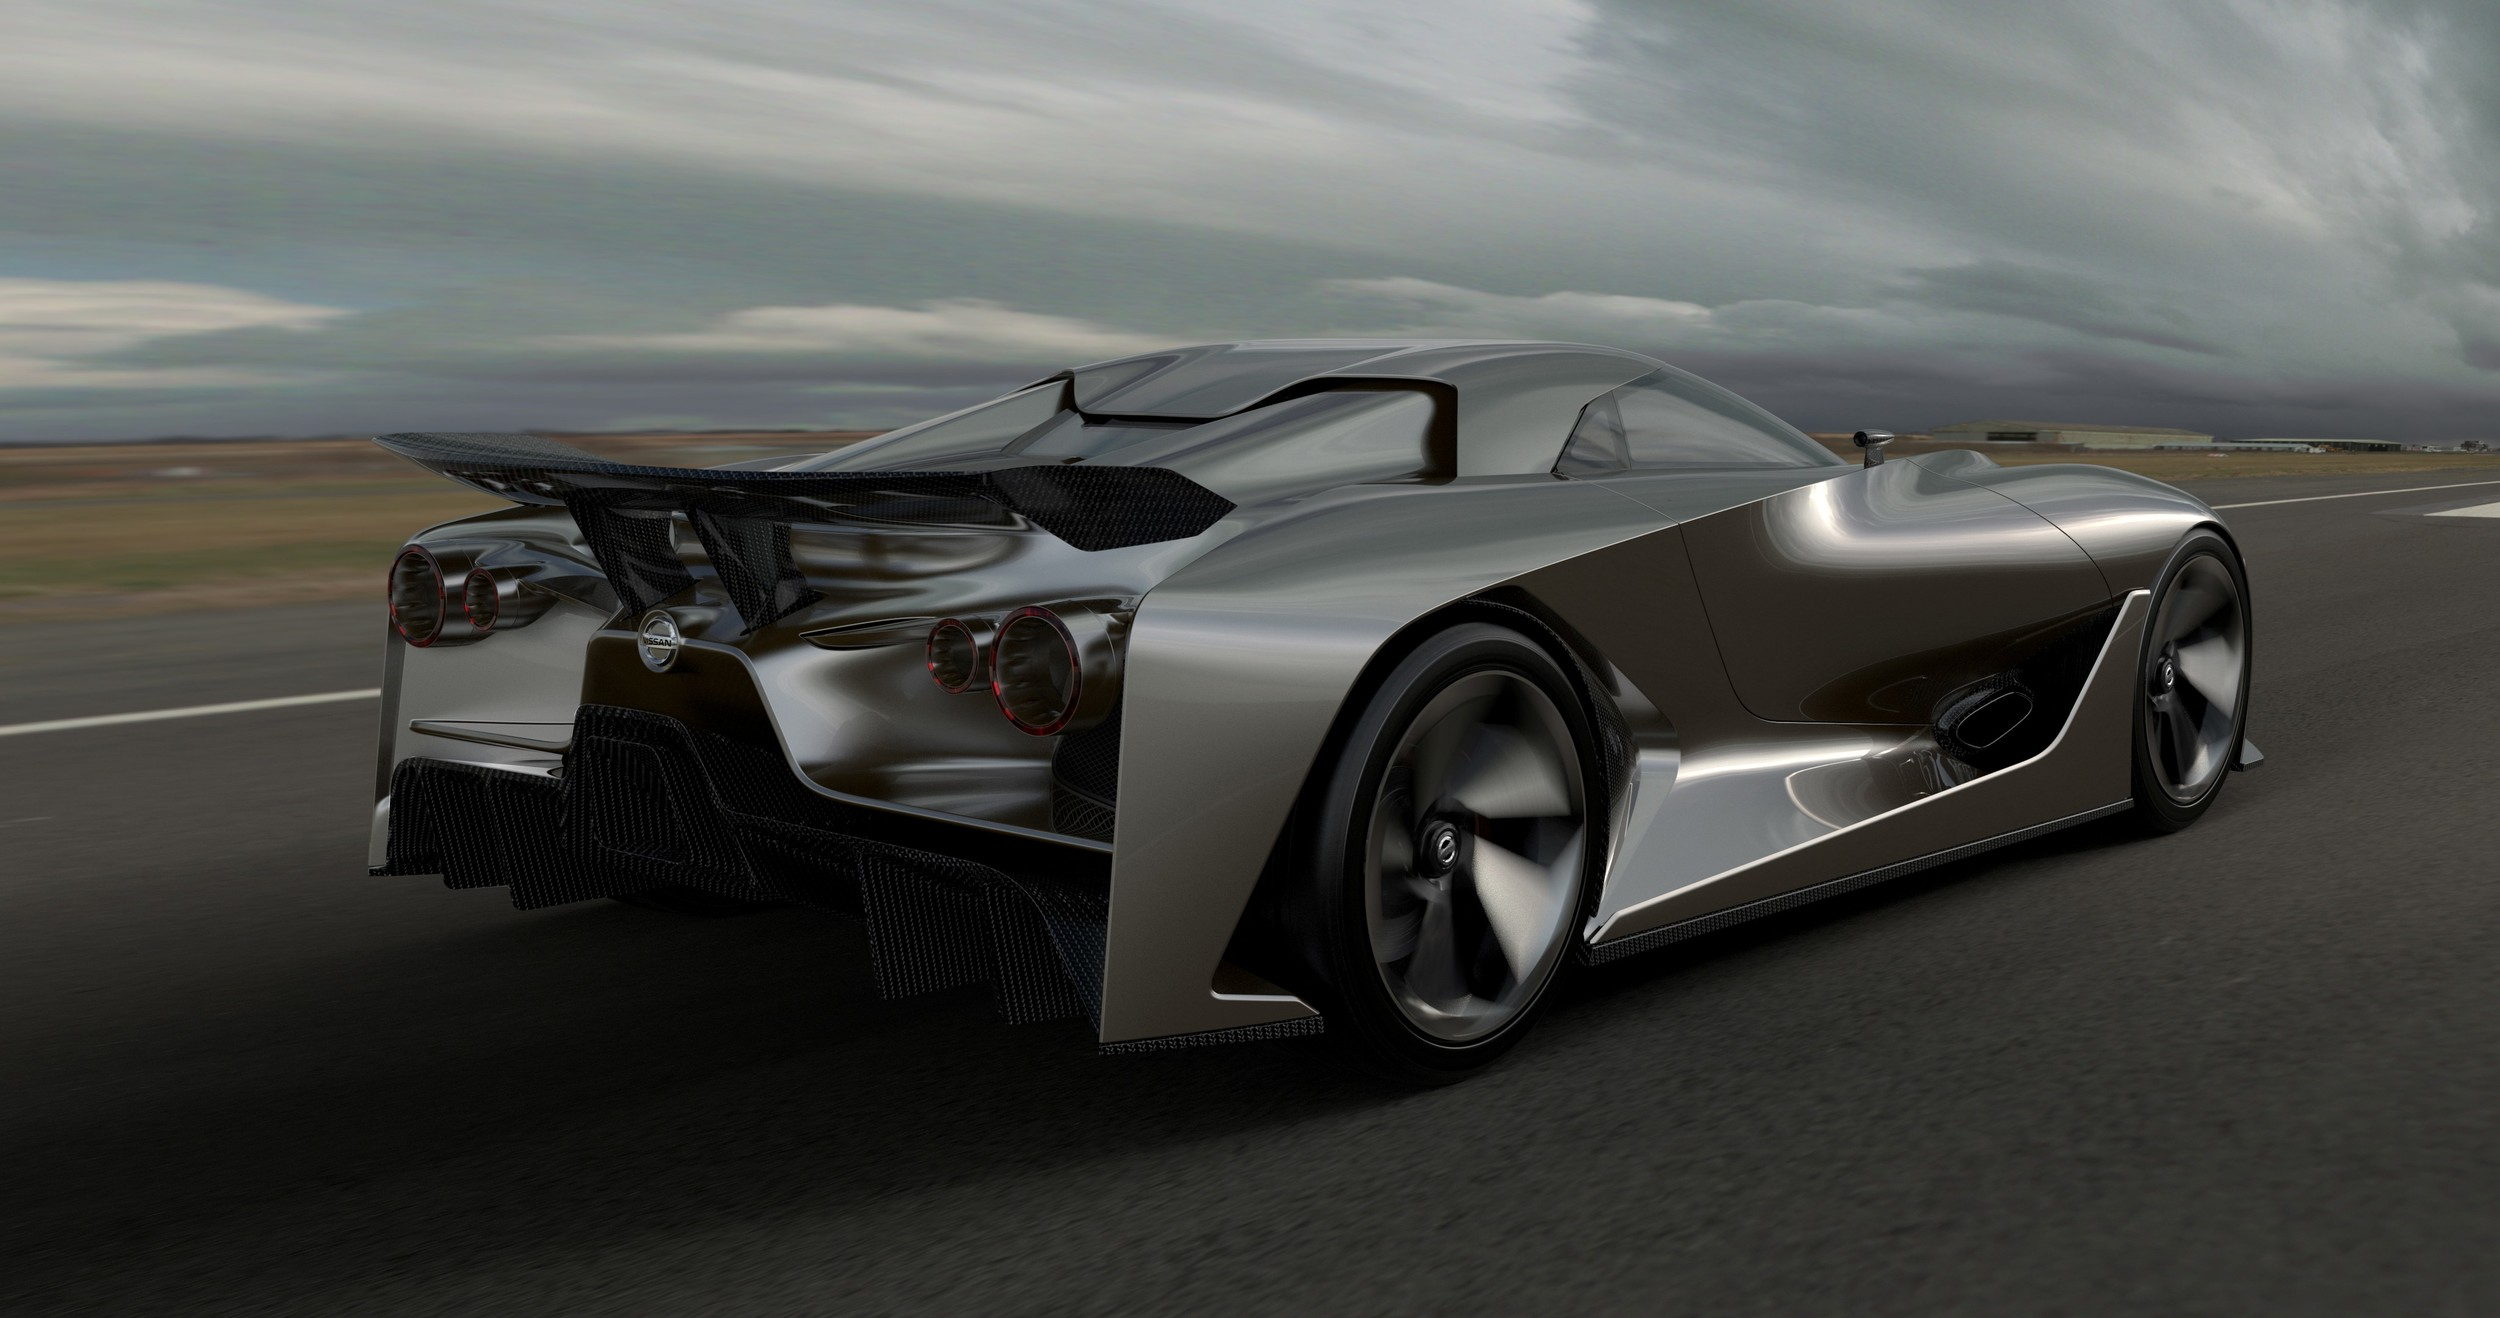 2014_Nissan_Concept_2020_Vision_Gran_Turismo_017_4108.jpg